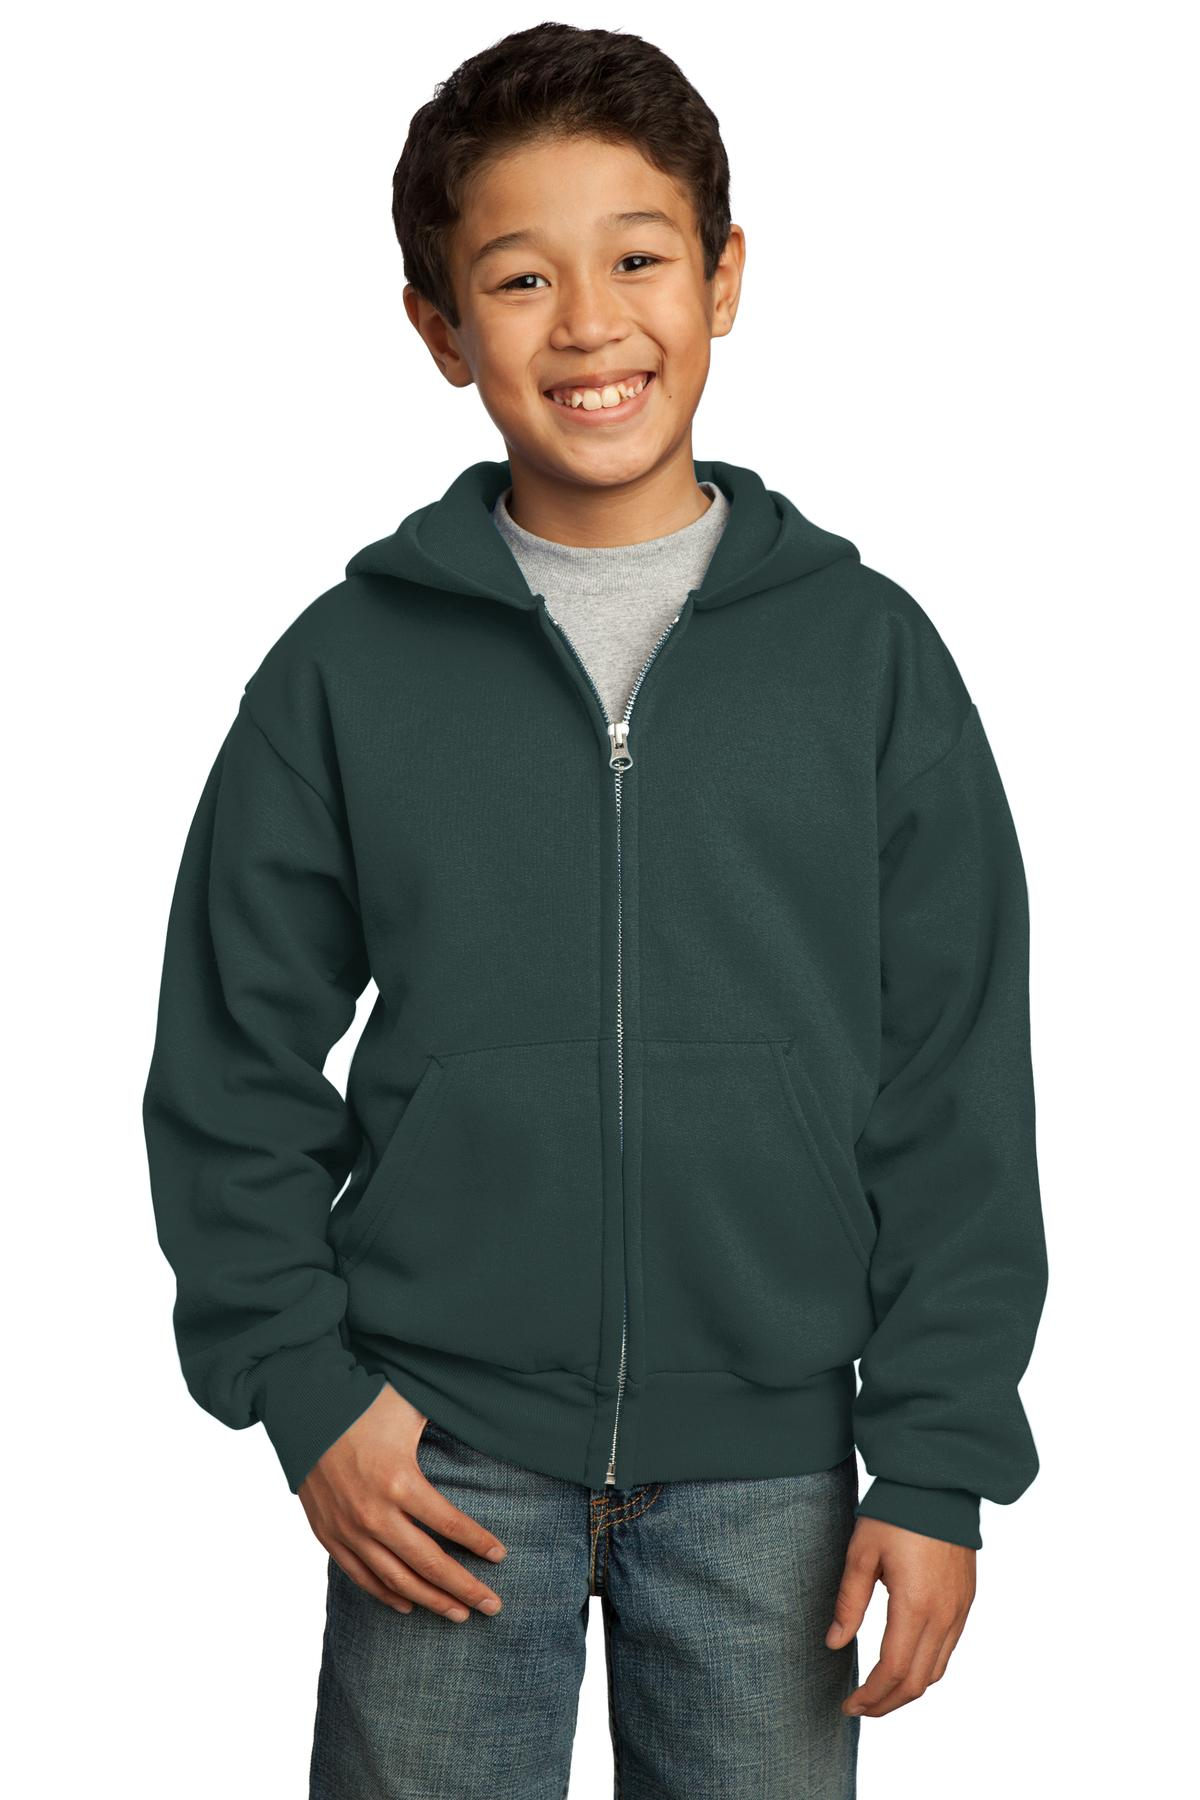 Port & Company ®  - Youth Core Fleece Full-Zip Hooded Sweatshirt.  PC90YZH - Dark Green